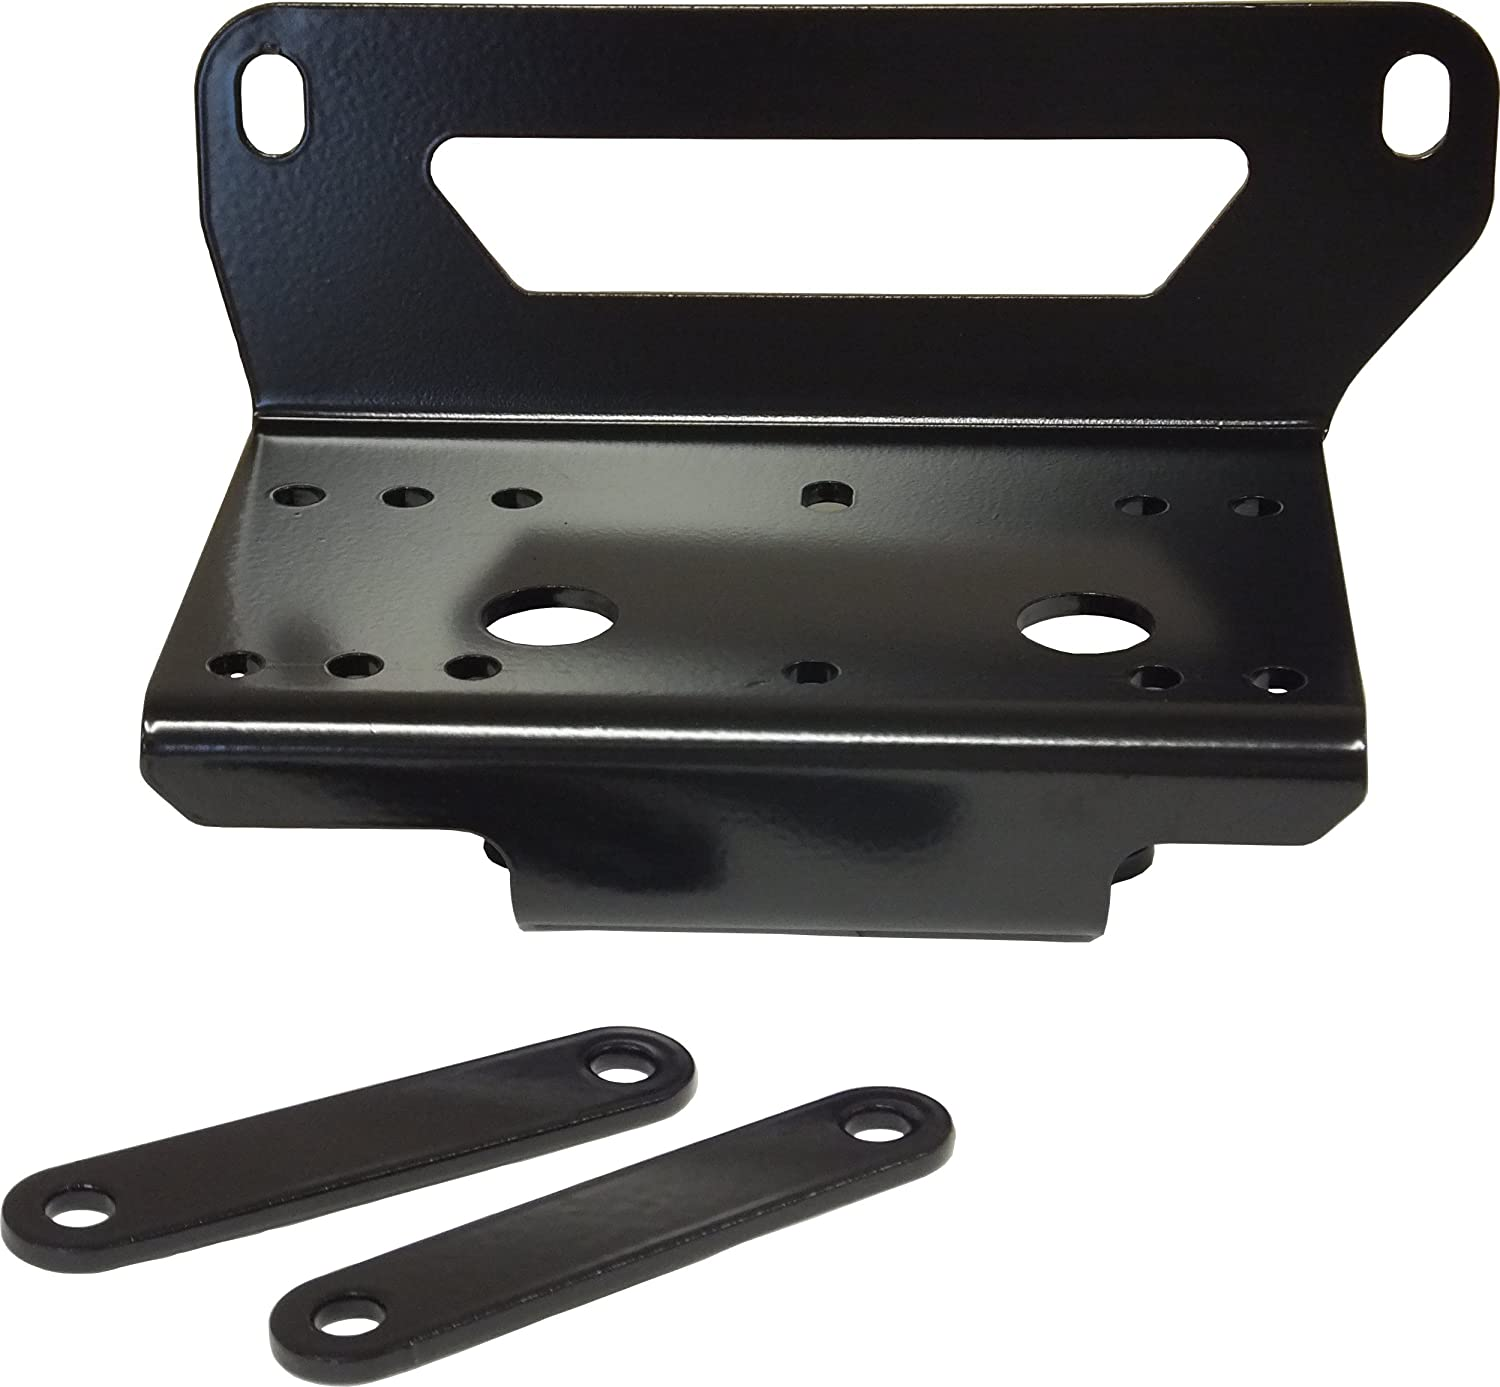 Without Factory Bumper For 3500 Lb SuperATV Heavy Duty Winch Mounting Plate for John Deere Gator RSX 850 Winches